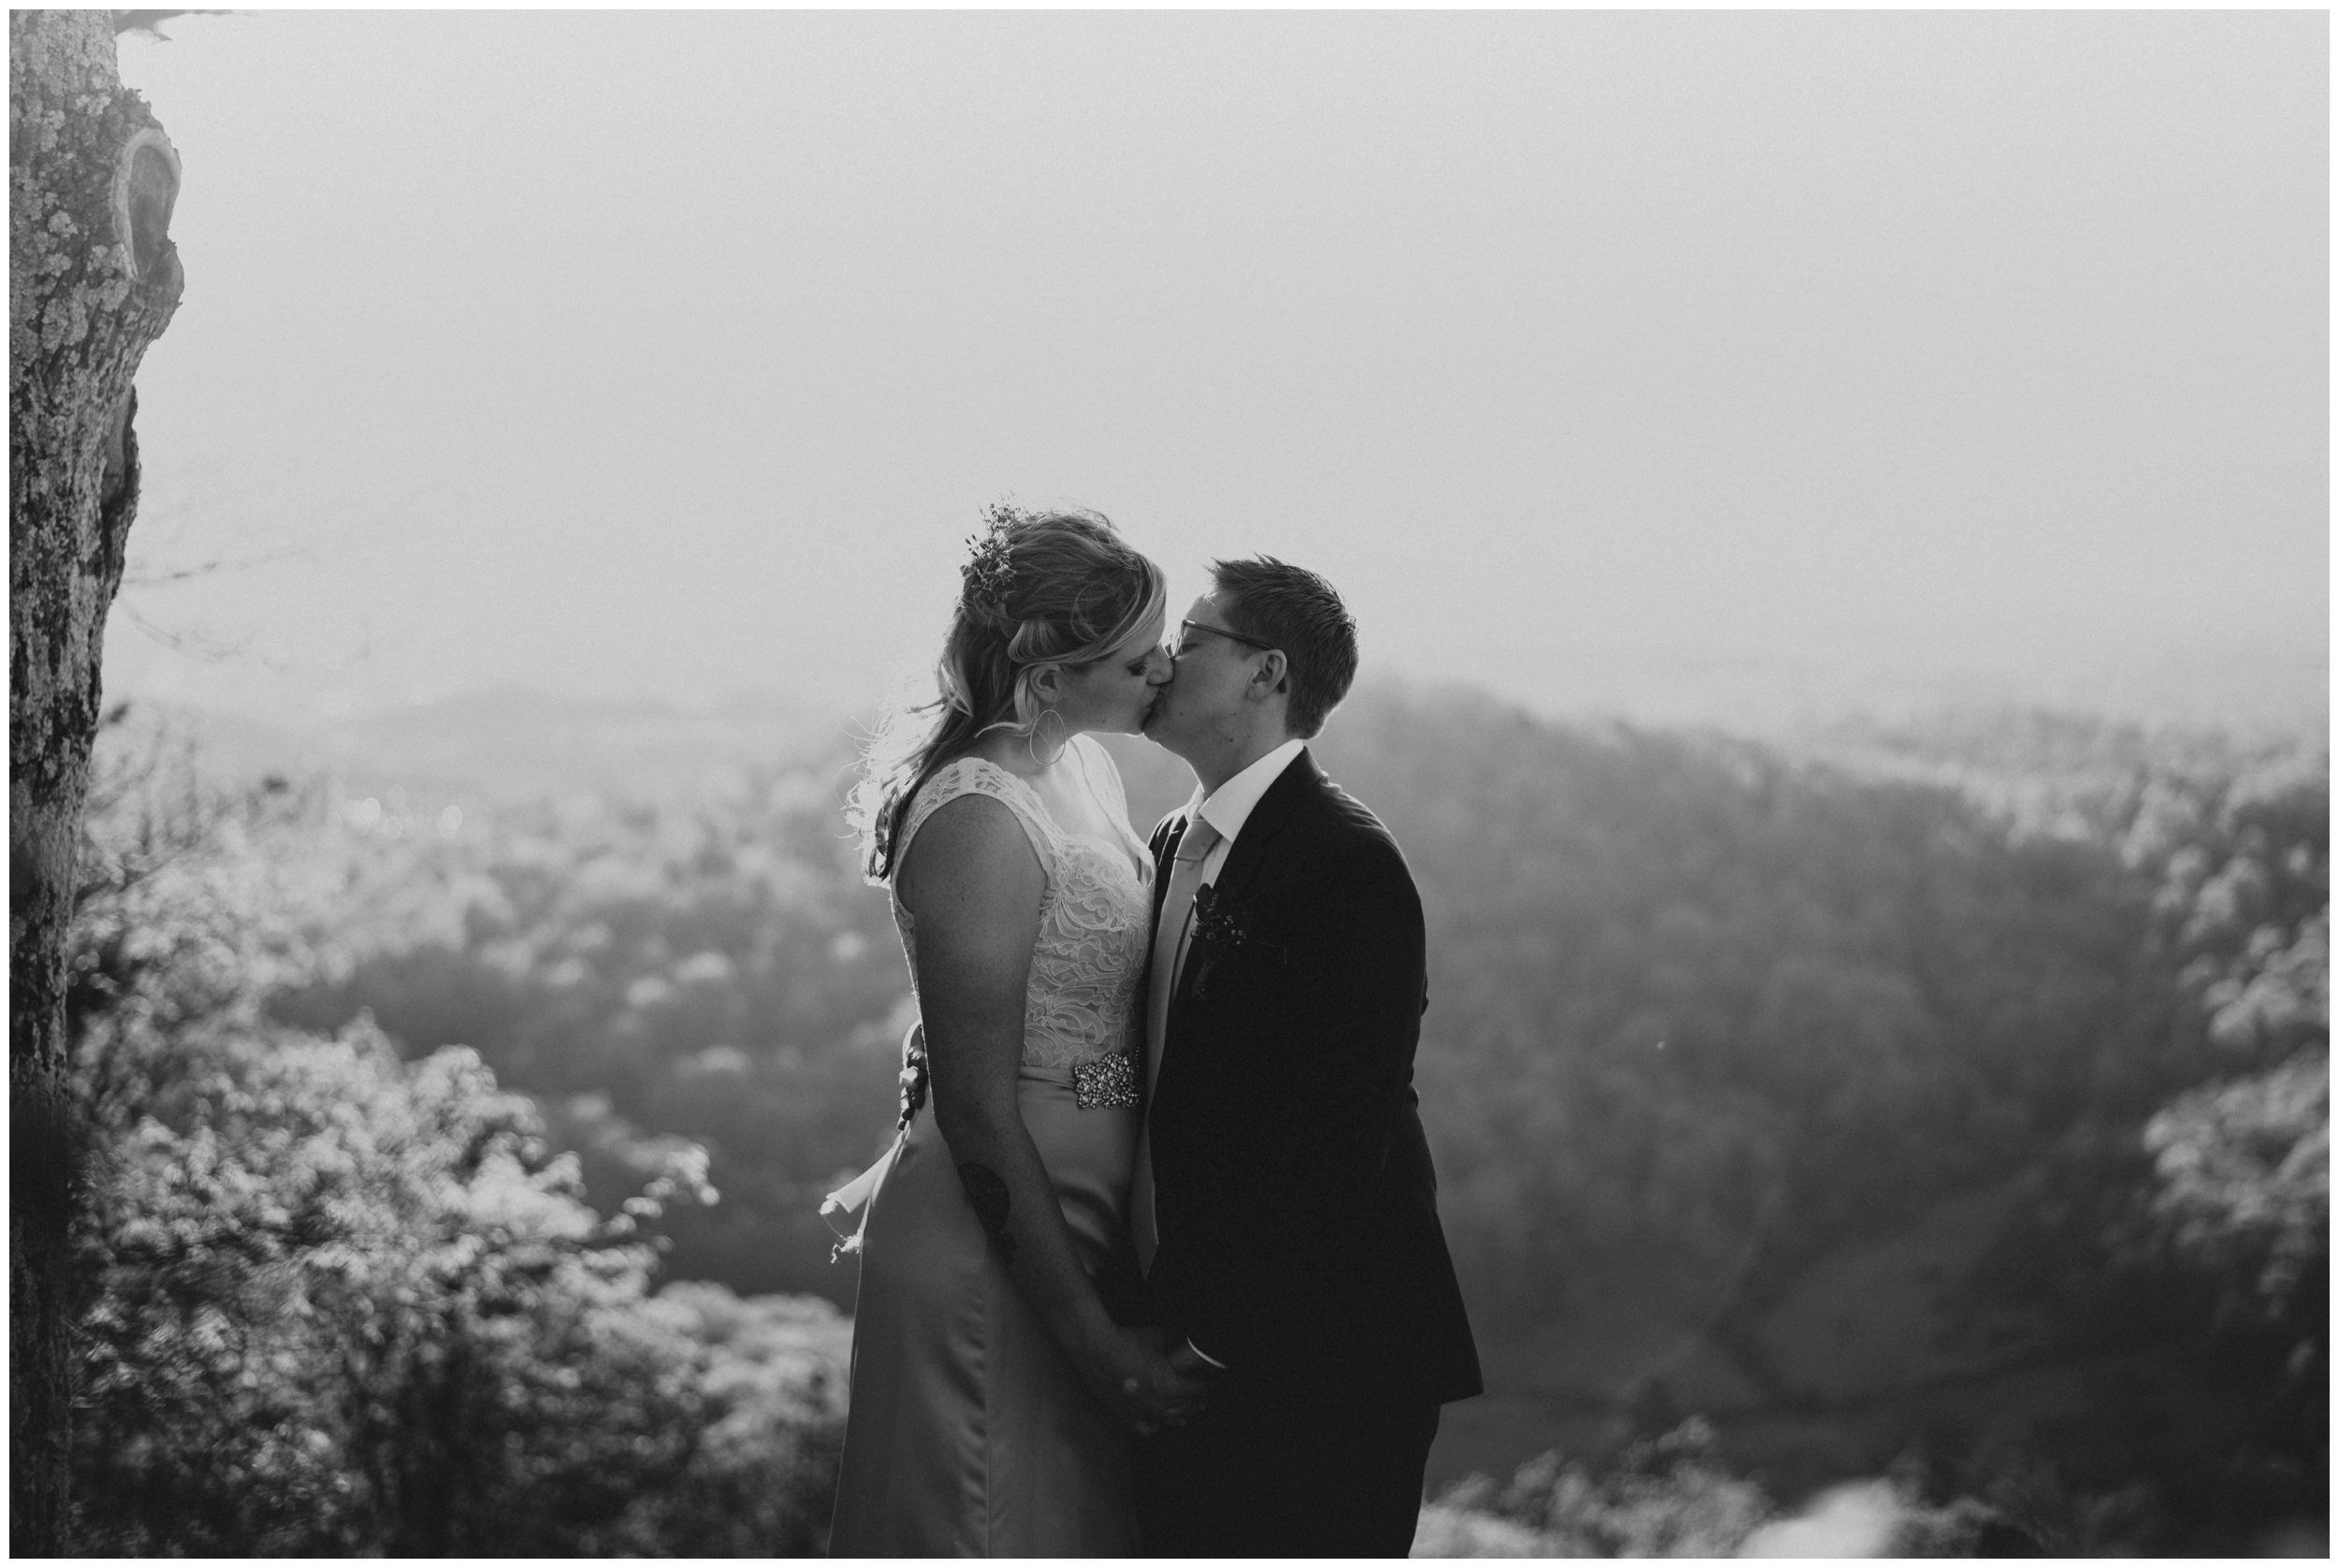 Roanoke Mountain Overlook at Sunset. Wedding Photographer  | www.riversandroadsphotography.com